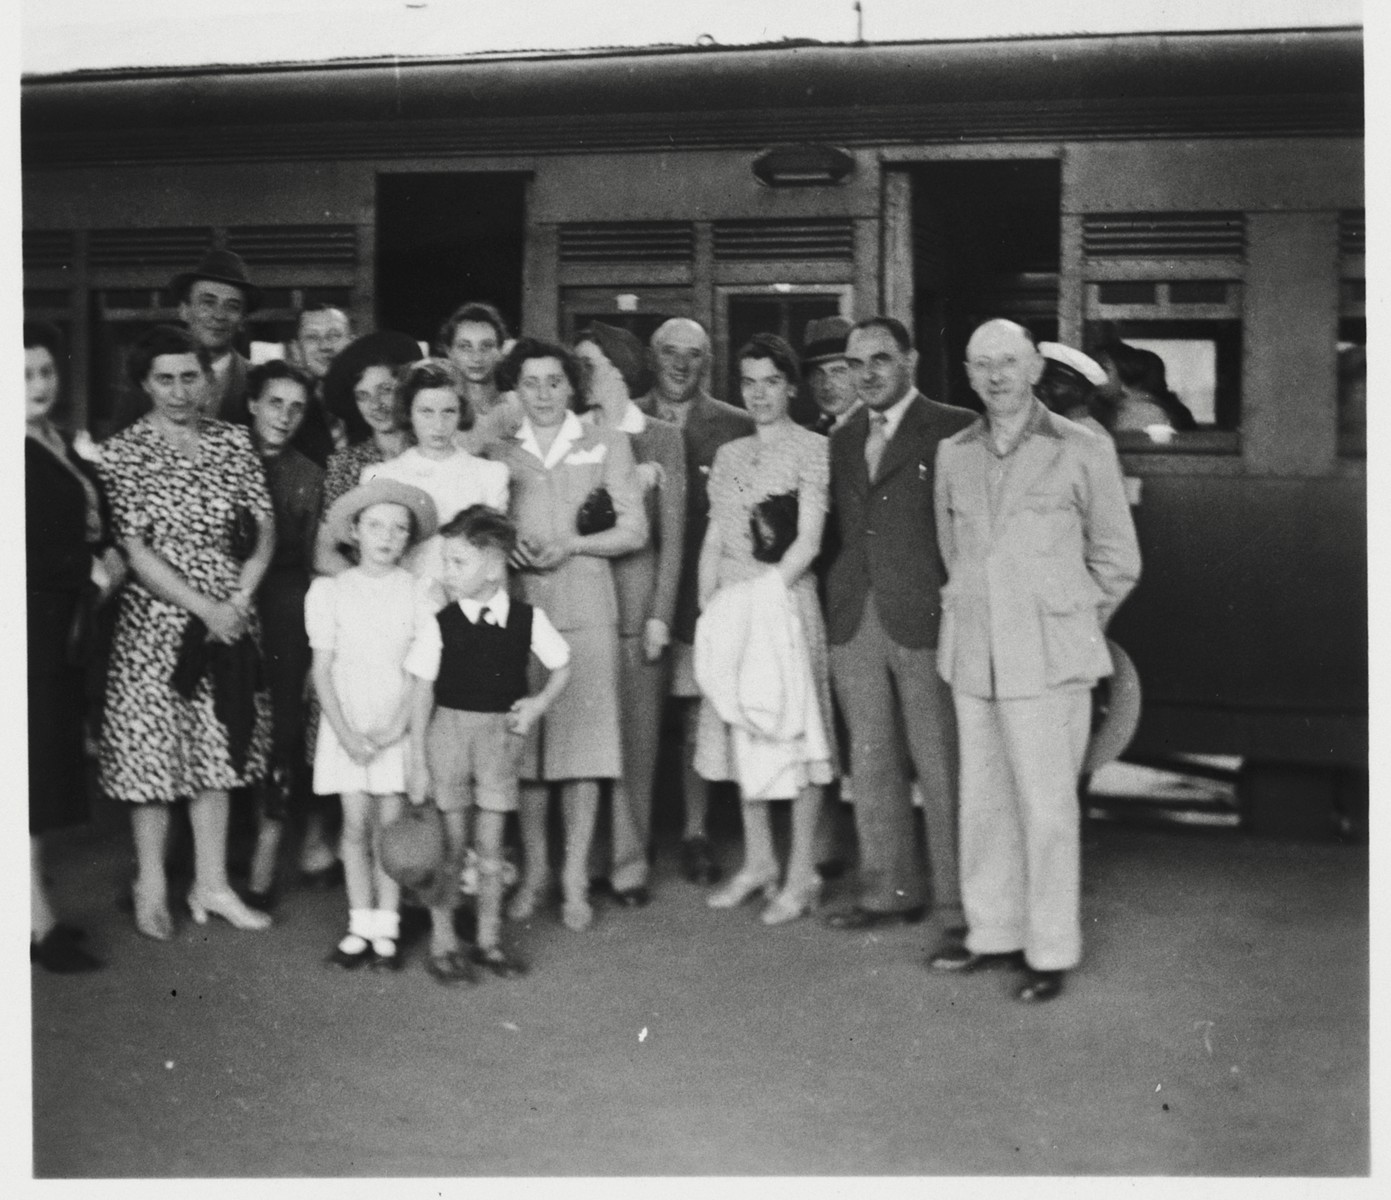 The Berg family is gathered on the platform at a train station in Kenya before their departure for the U.S.   Pictured are Eliahu Fried, Sarah (Meyer) Berg, Sabina Lustman, Mrs. Bruckman, Erna (Meyer) Baum, Gisela Berg, Inga Berg, Klara Berg, Else Berg, Ernest Berg, Rosel (Marx) Berg, Mr. Bruckman, Adolf Baum and Josef Berg.